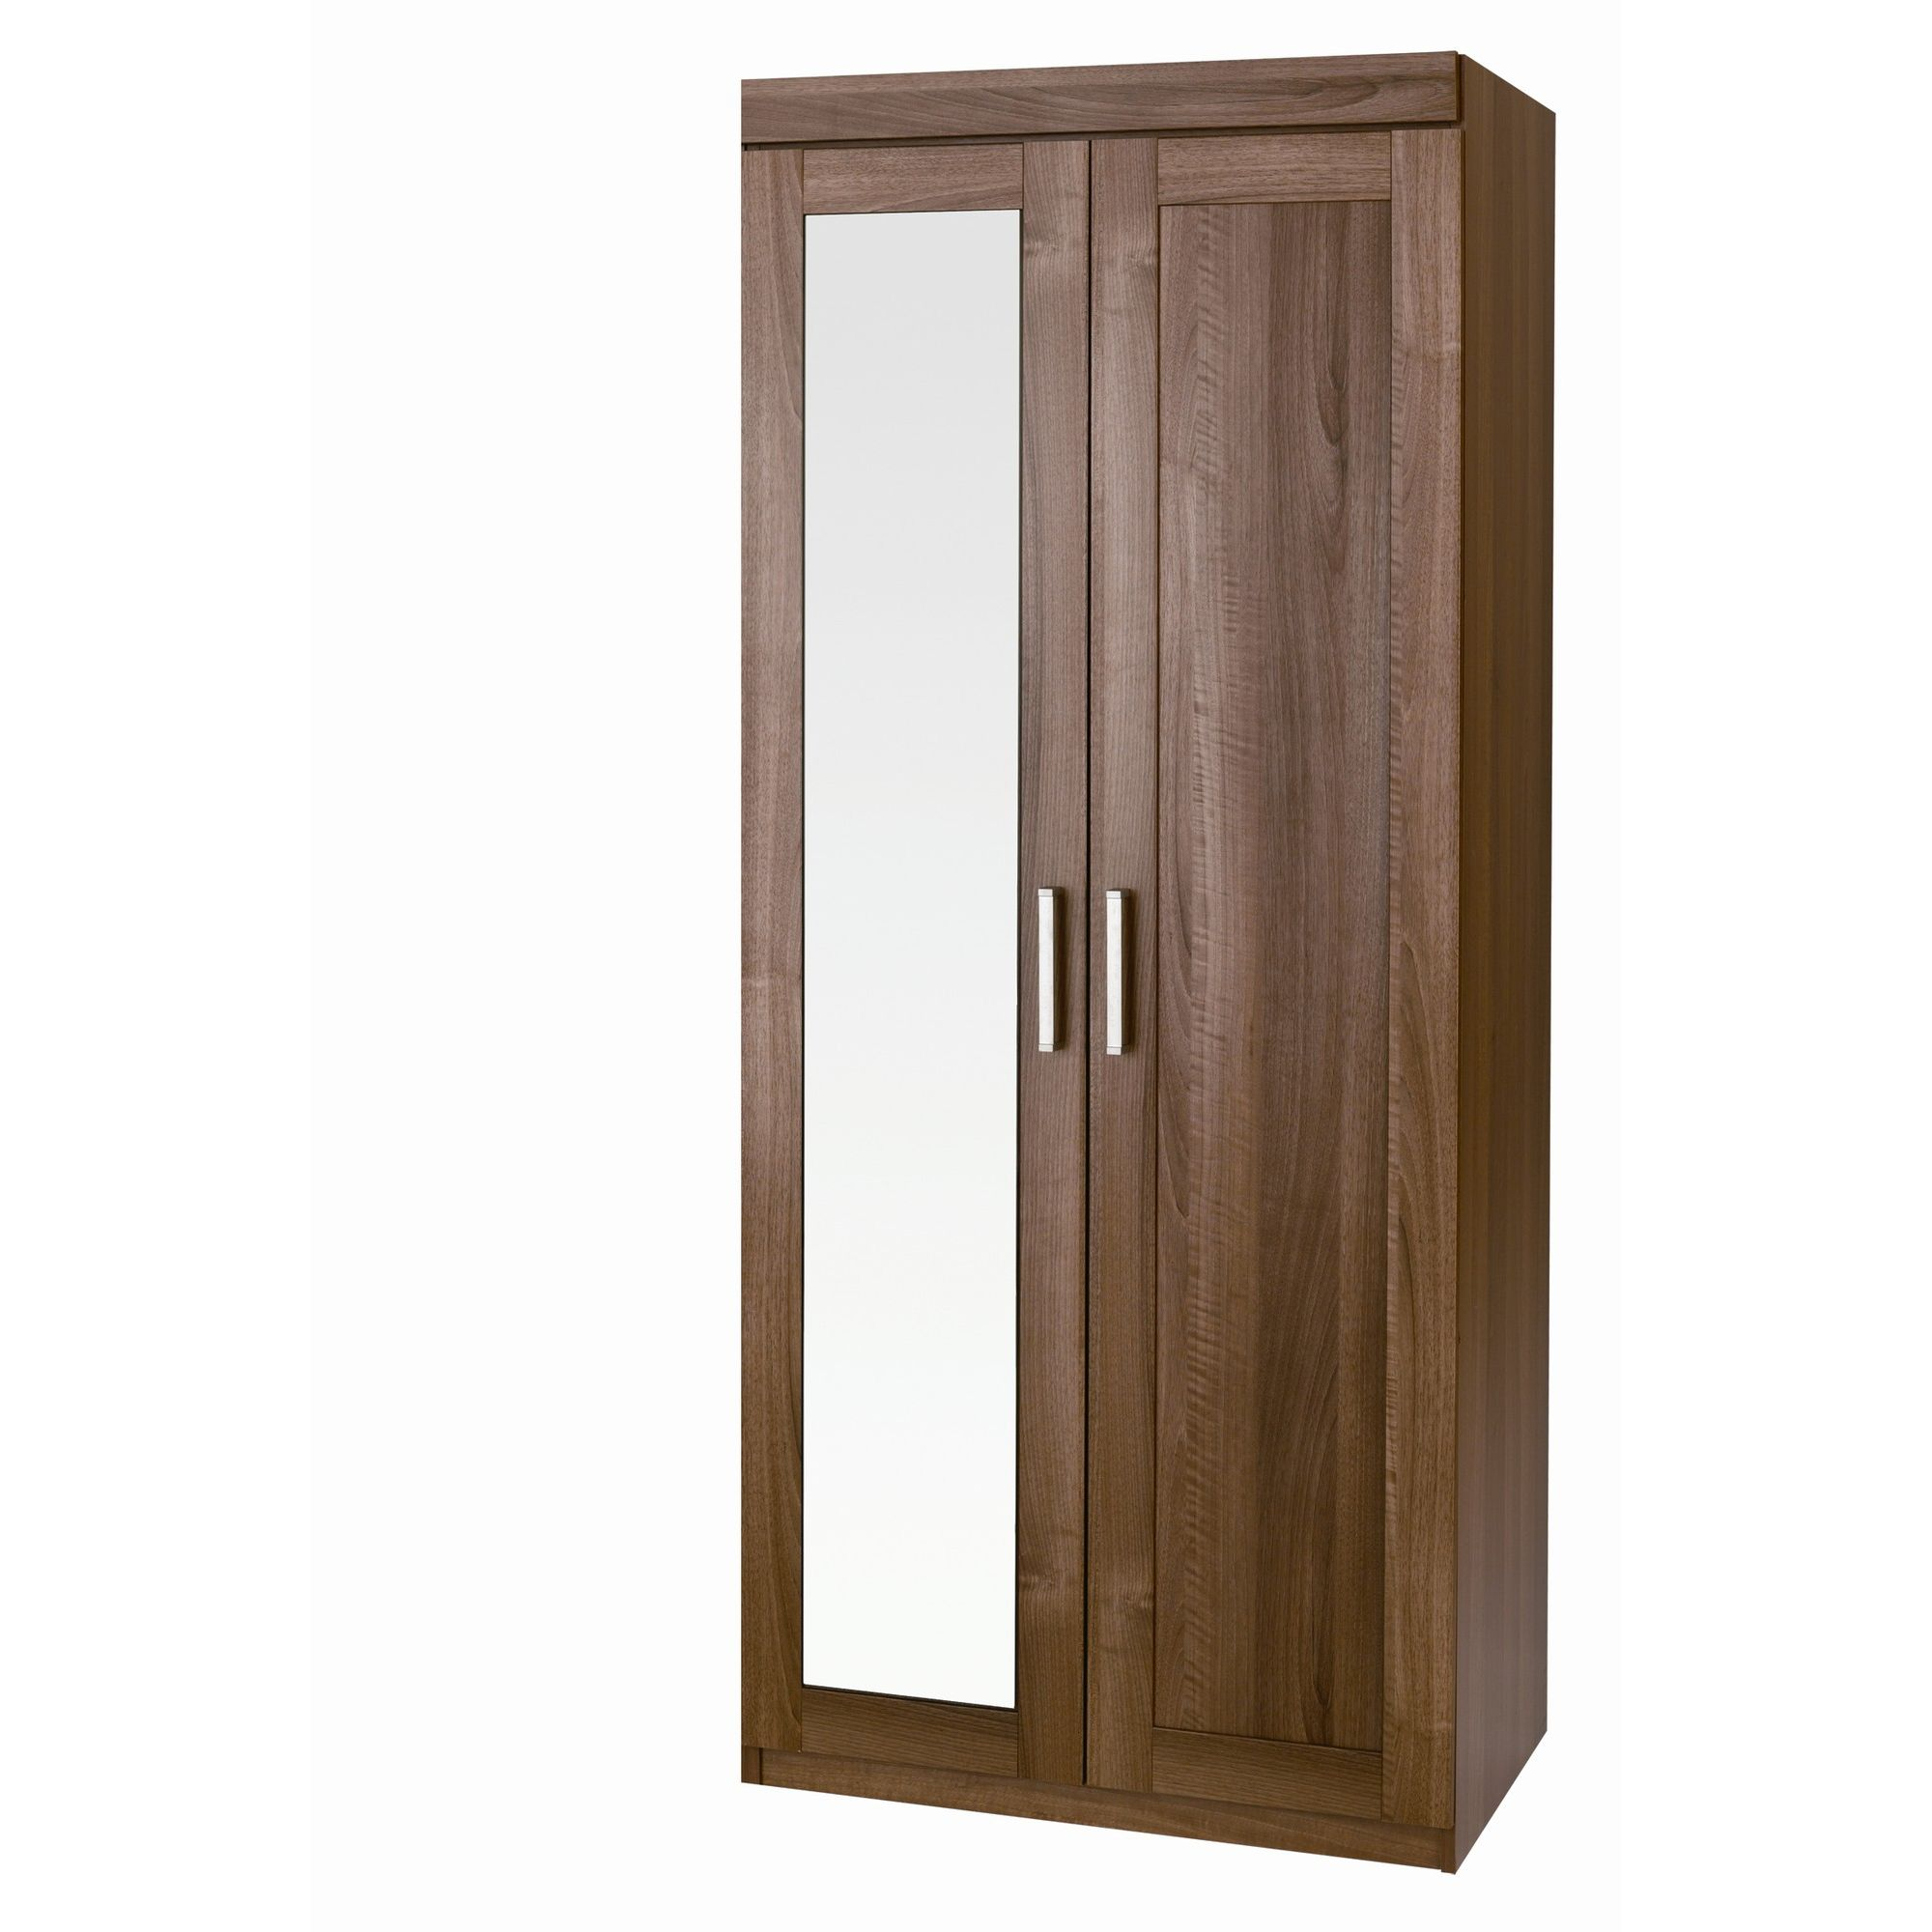 Alto Furniture Visualise Alive Wardrobe with Mirror in Natural Aida Walnut at Tesco Direct